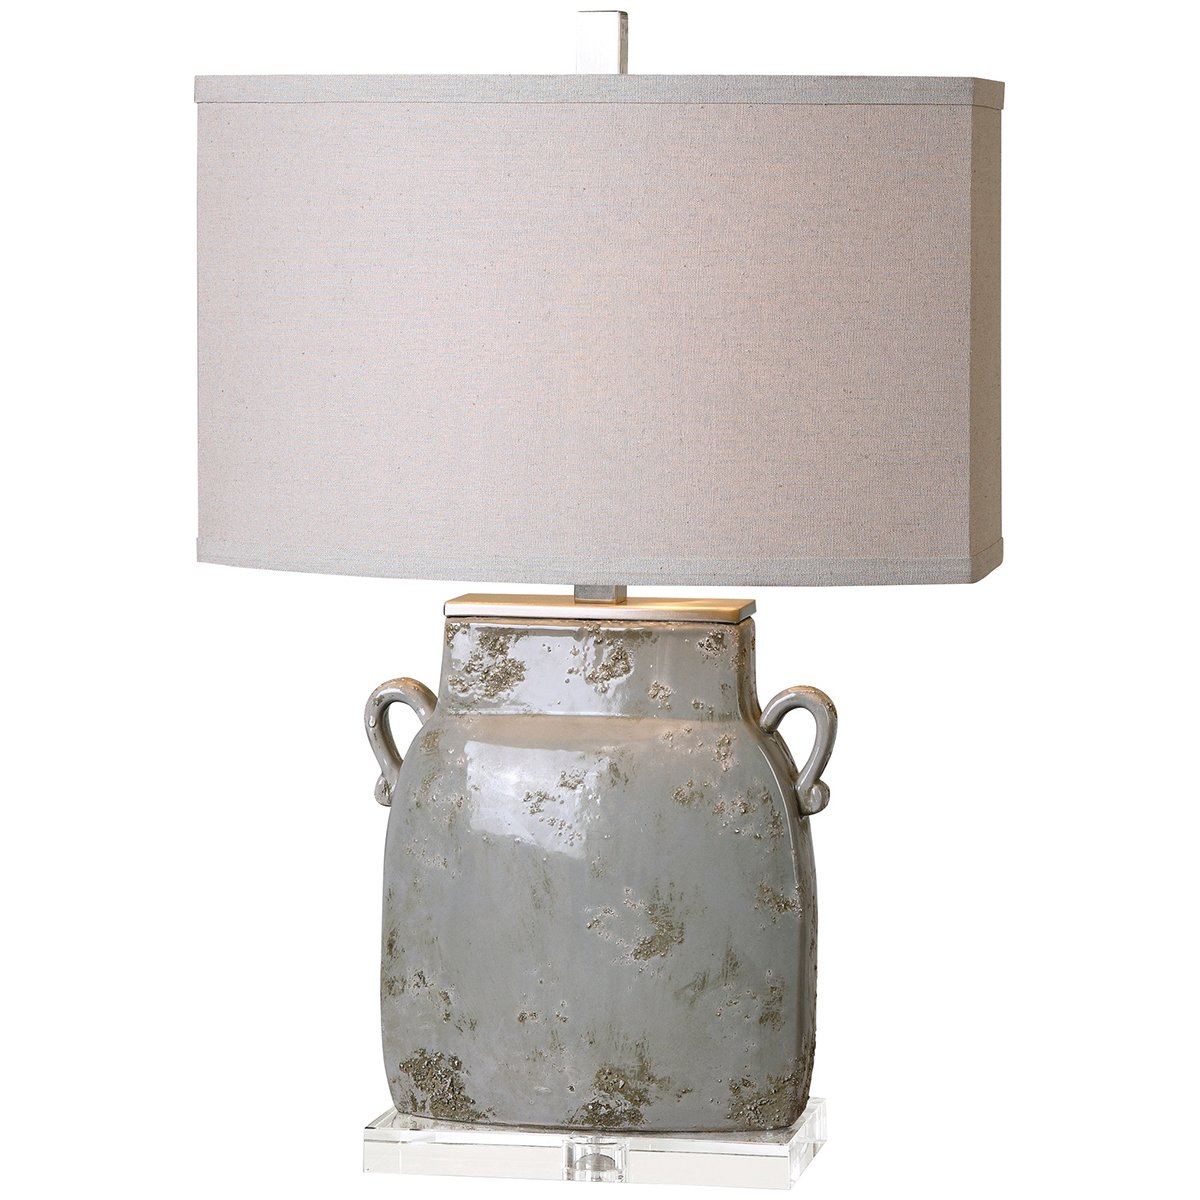 Uttermost Melizzano Lamp in Grey and Ivory